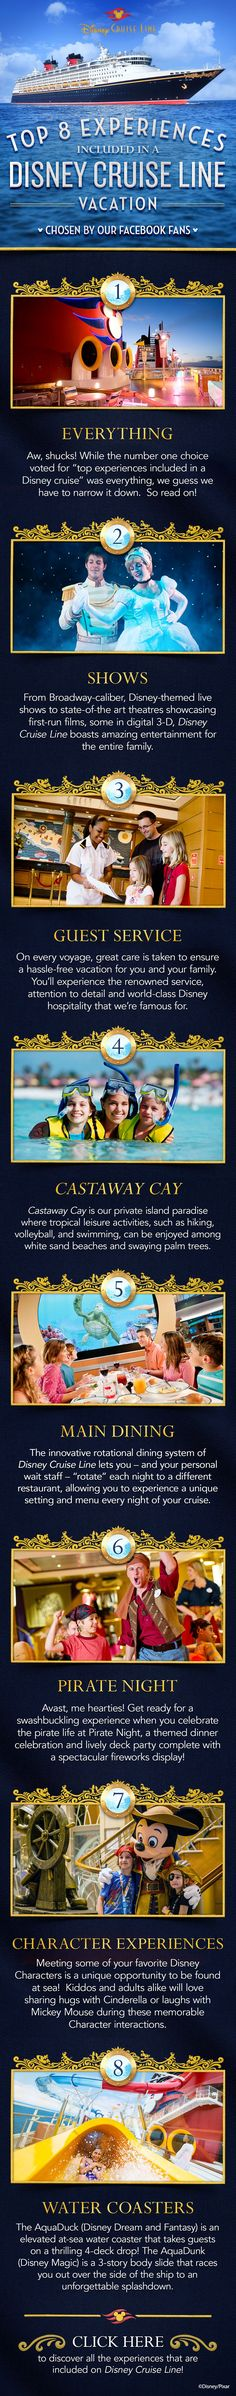 Top 8 Experiences included in a Disney Cruise Line vacation - chosen by our Facebook fans!